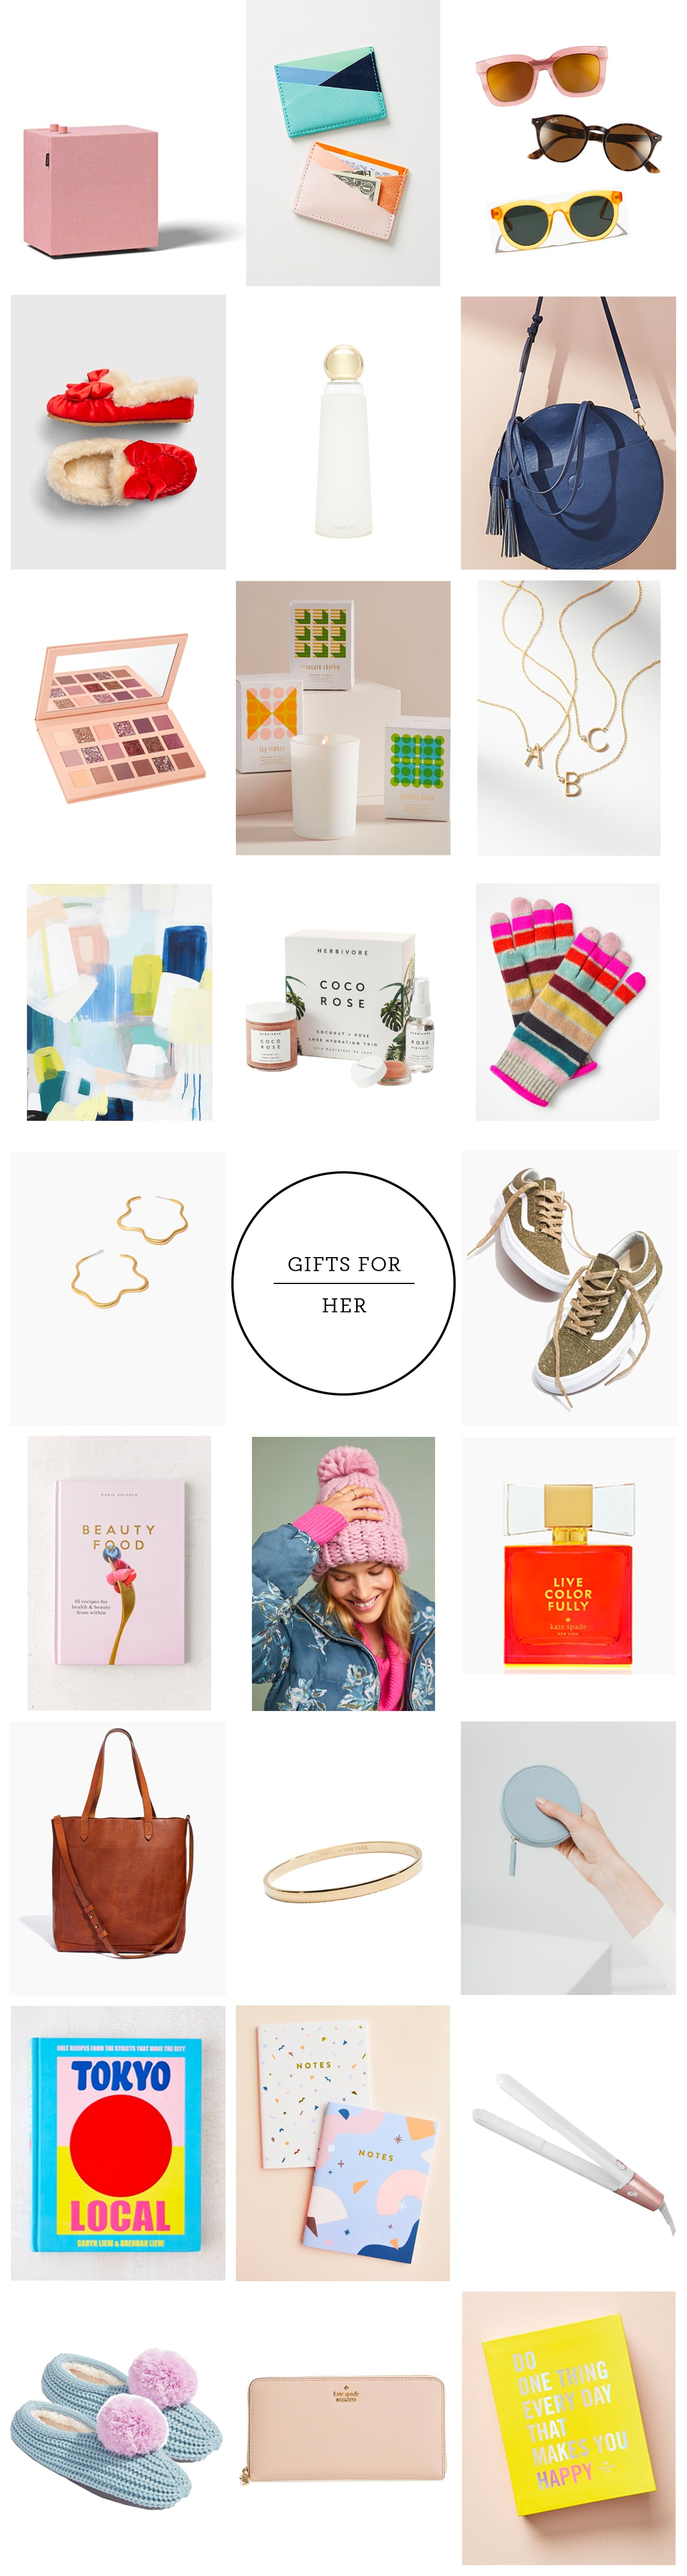 Shopping guide Gifts for her by houston lifestyle and diy blogger Ashley Rose with Sugar and Cloth #holidays #shoppingguide #christmas #womensgifts #giftsforher #holidayshopping #chirstmasshopping